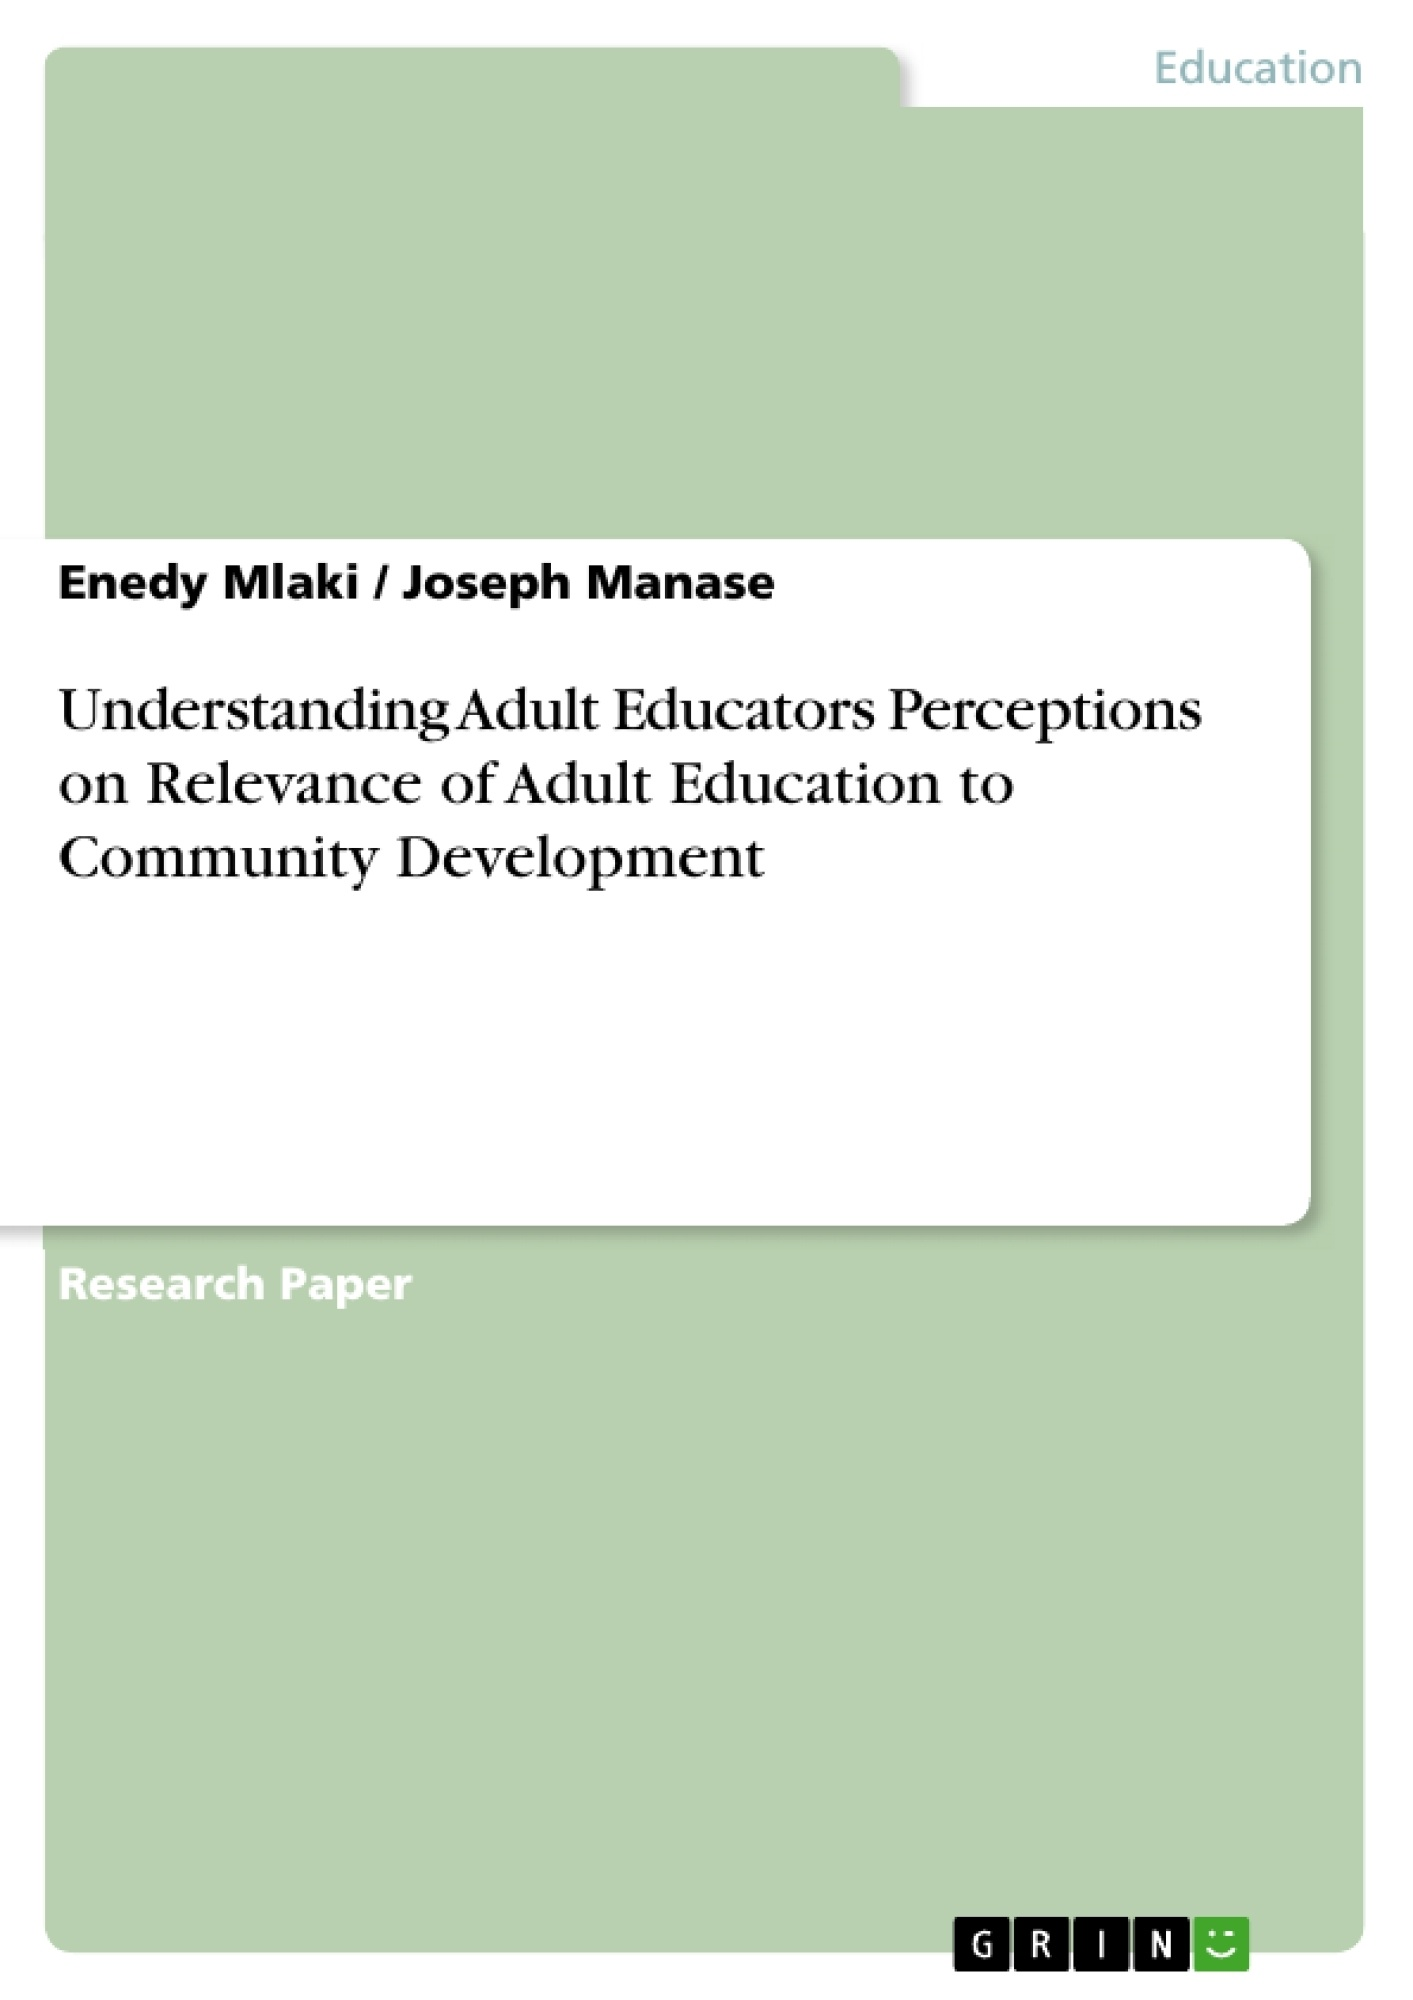 Title: Understanding Adult Educators Perceptions on Relevance of Adult Education to Community Development